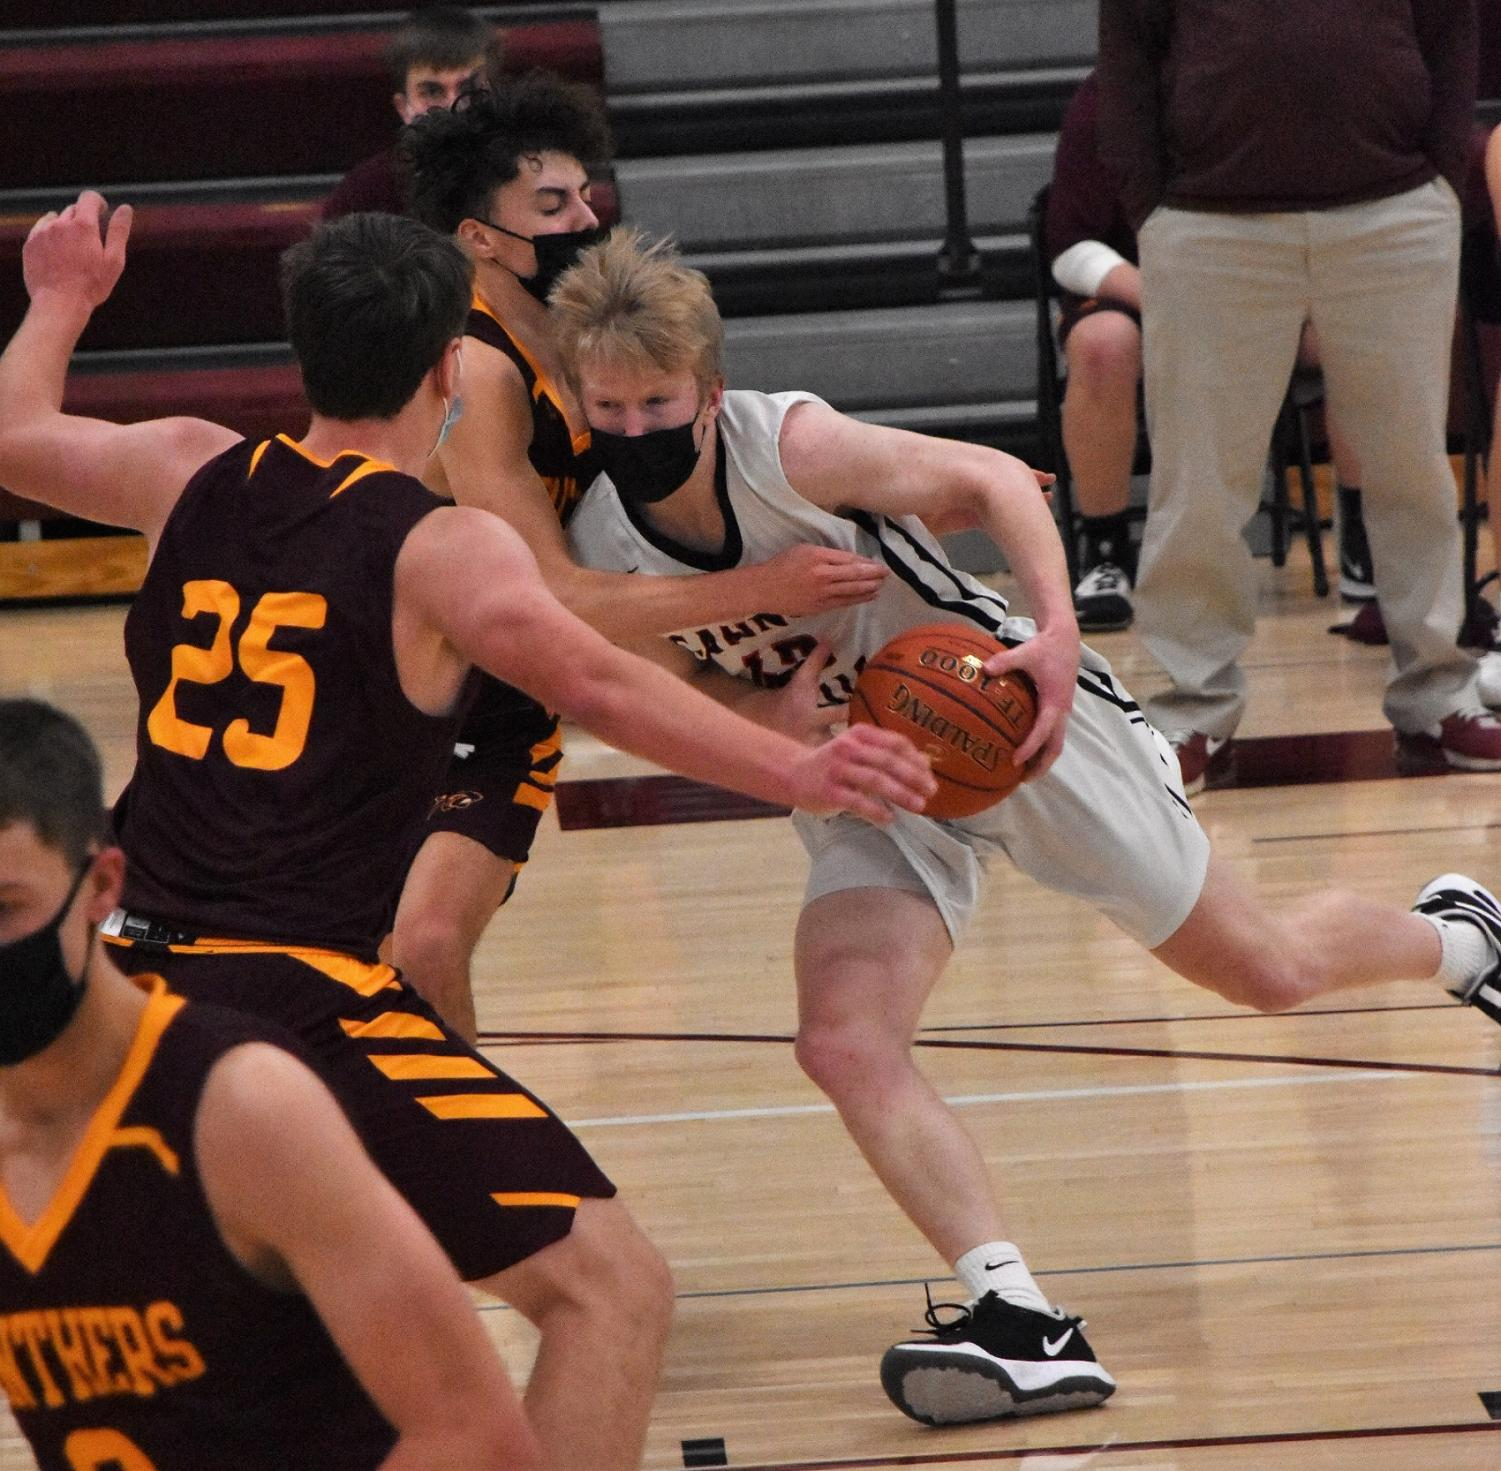 Bomber guard Jacob Wulf slashes toward the basket in a game against Pine Island